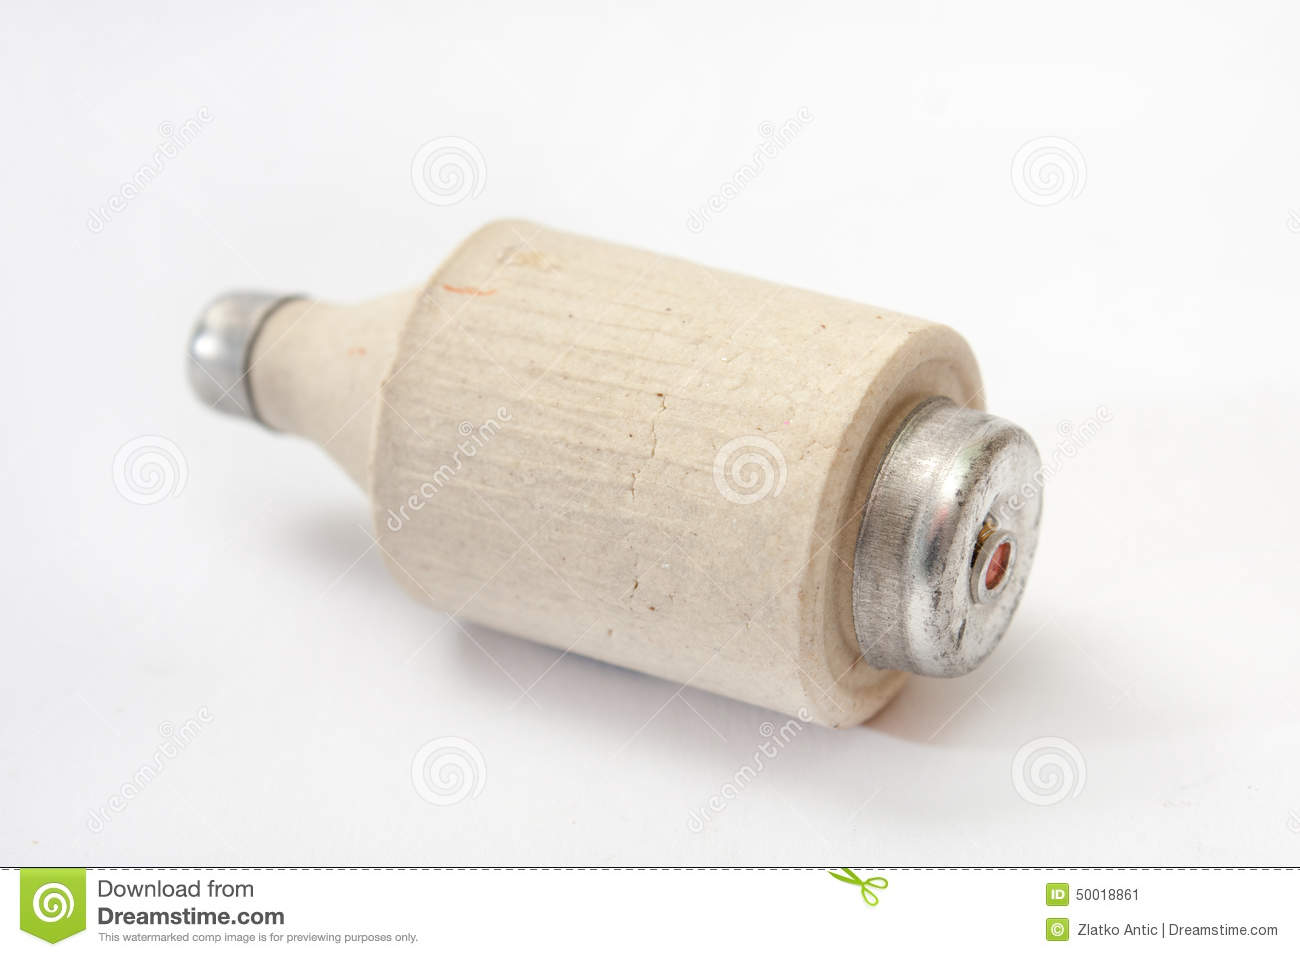 fuses in mobile home breaker box old ceramic fuse on the white background stock photo ...